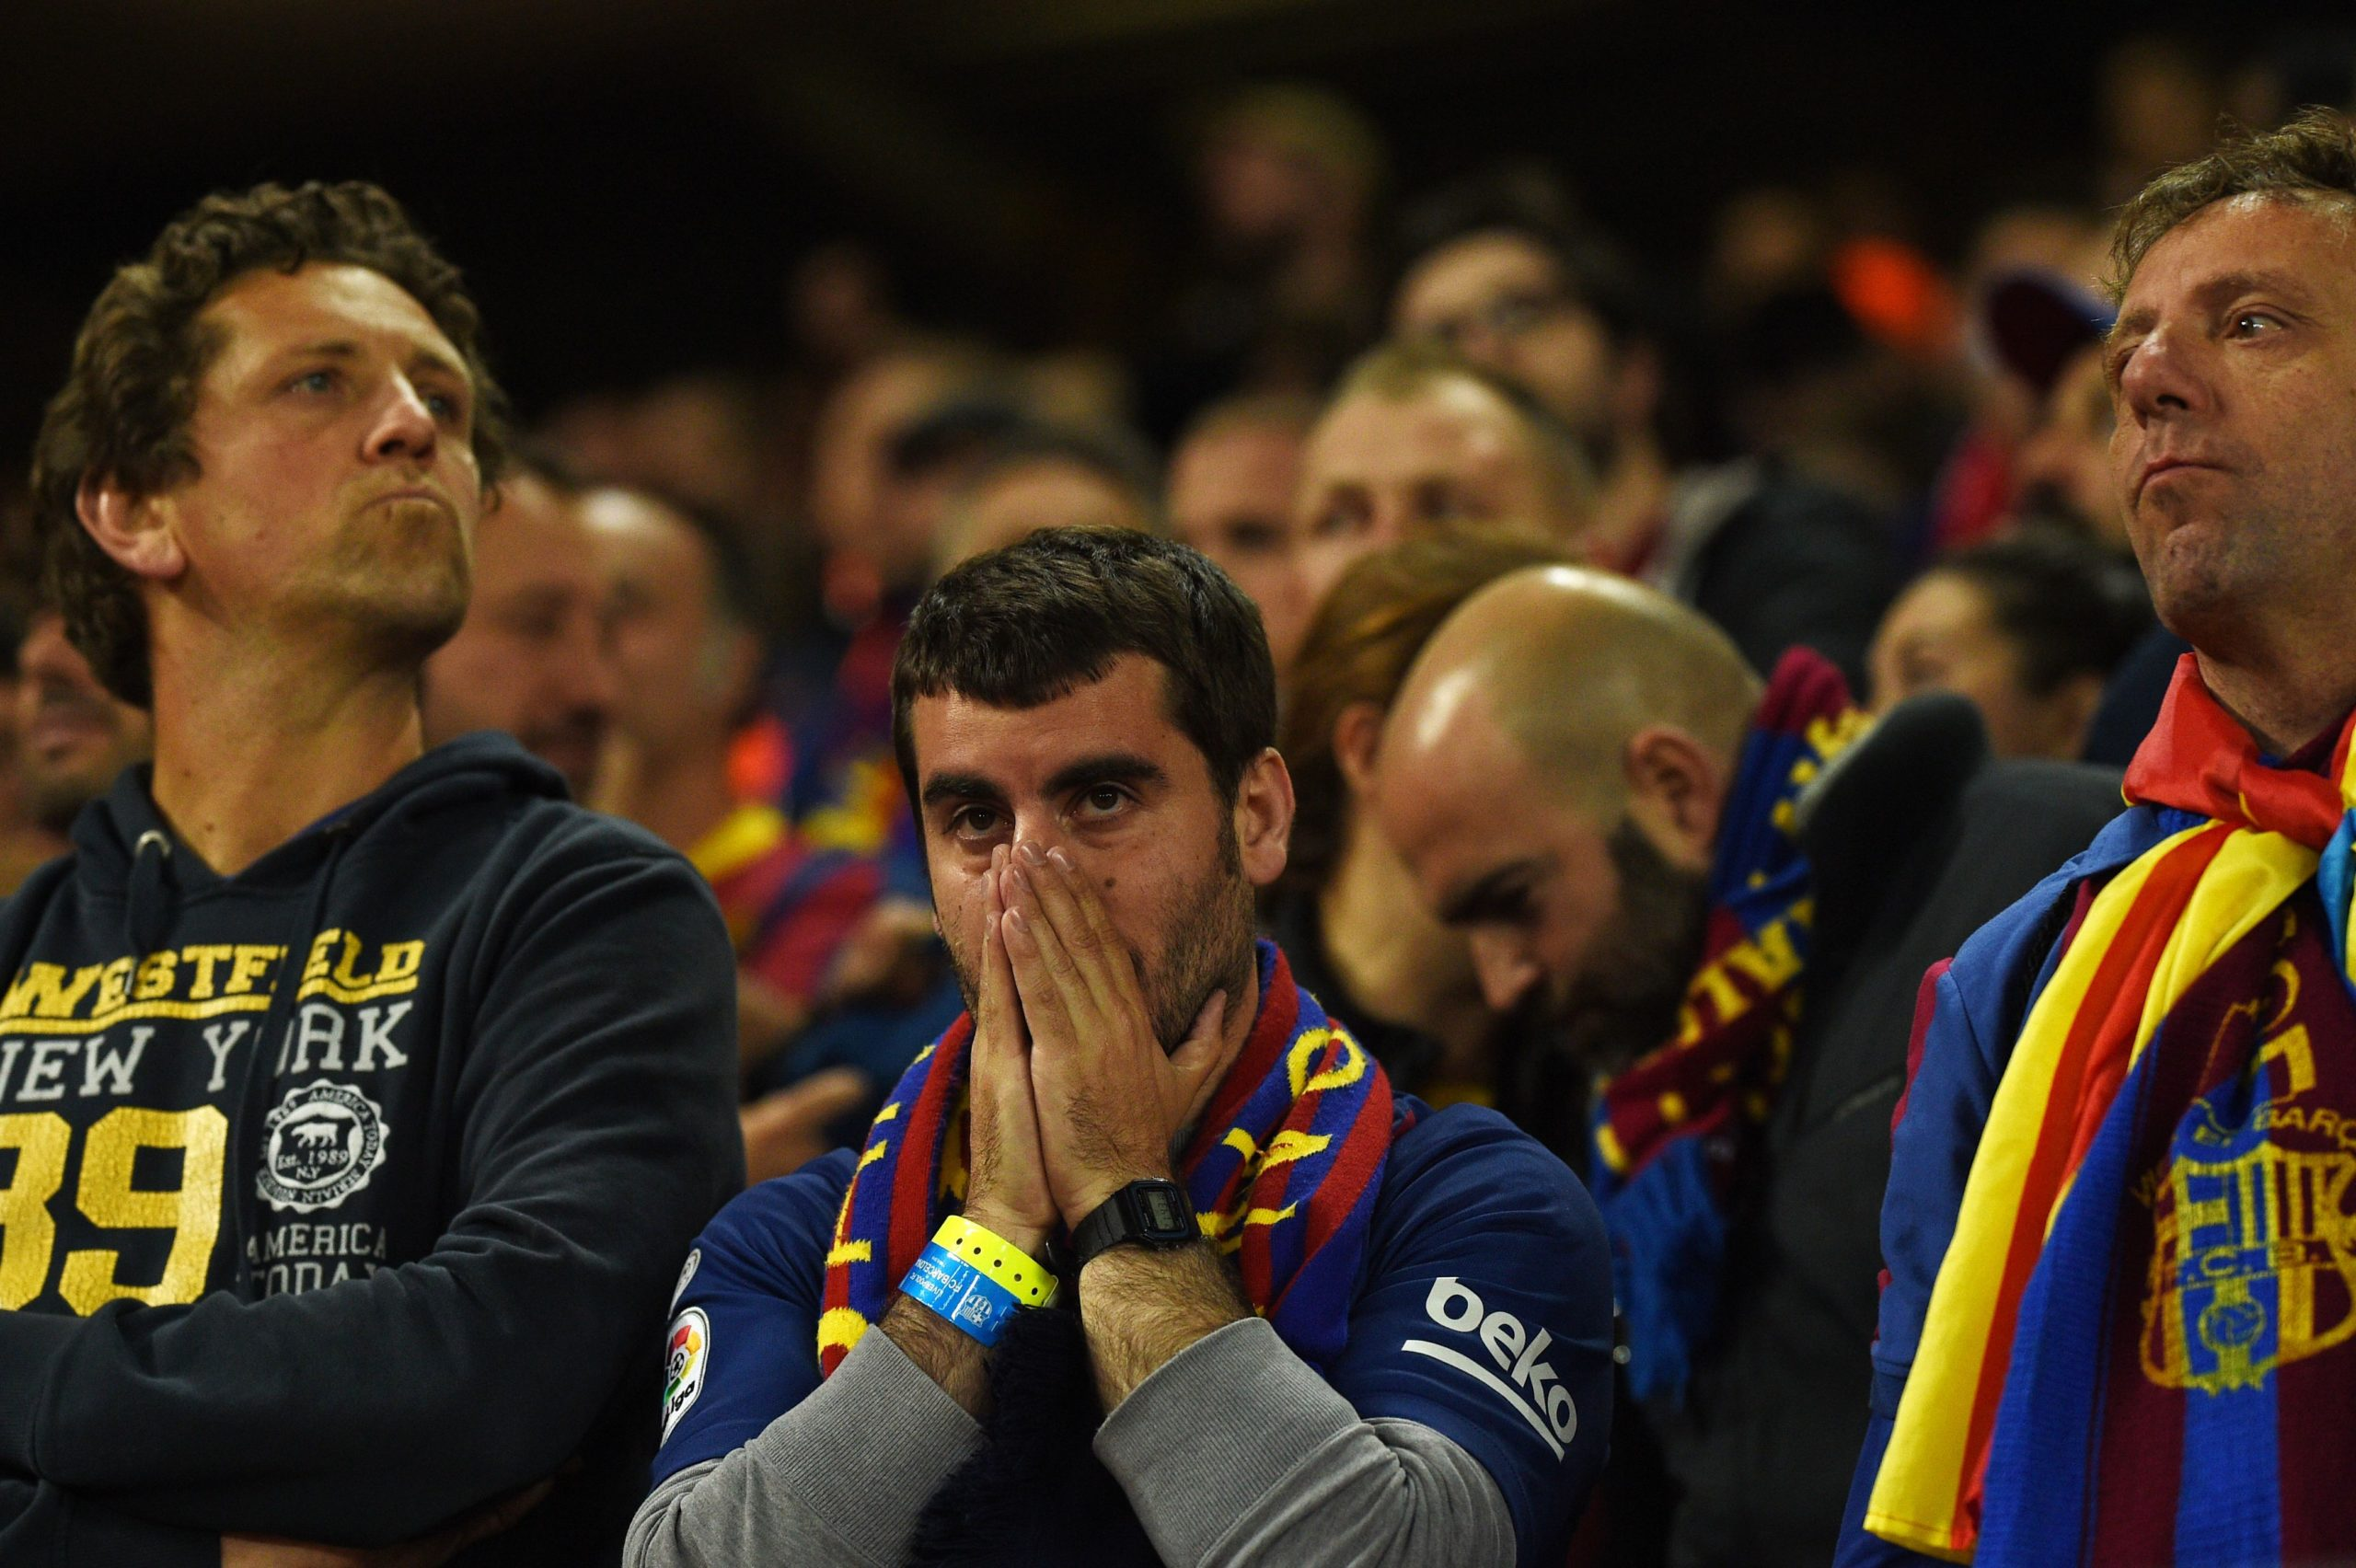 Football fans crying.